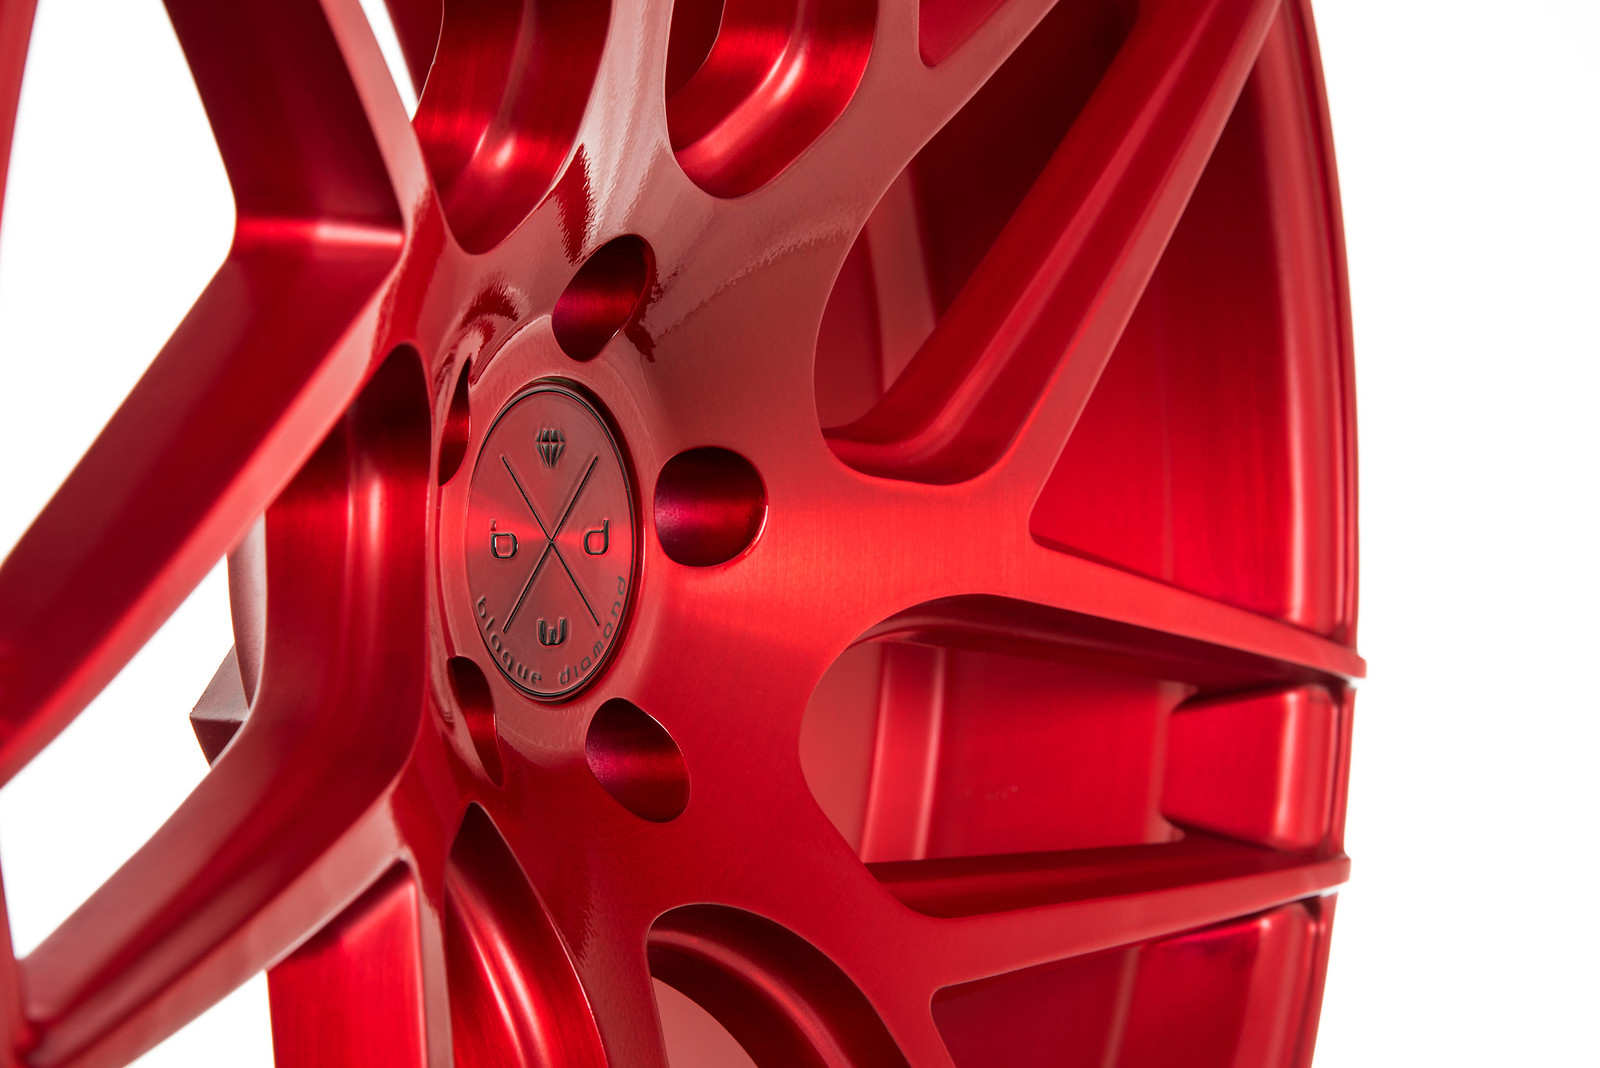 BD3_Brushed_Anodized_Red-4